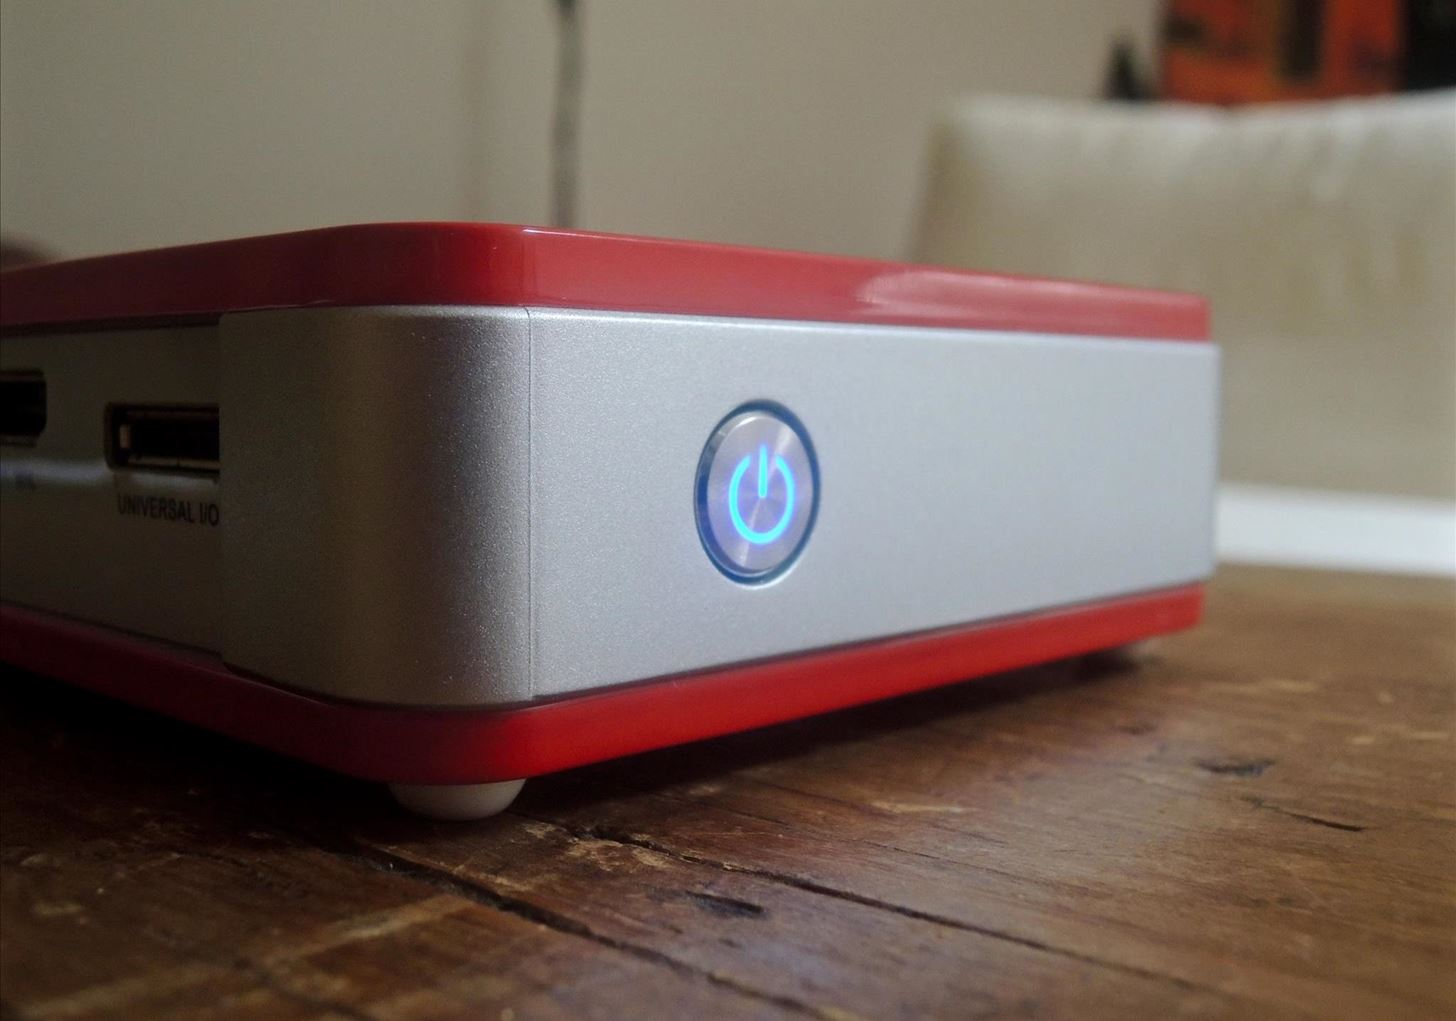 Review: The Qumi Q5 Pocket Projector Is a Solid On-the-Go